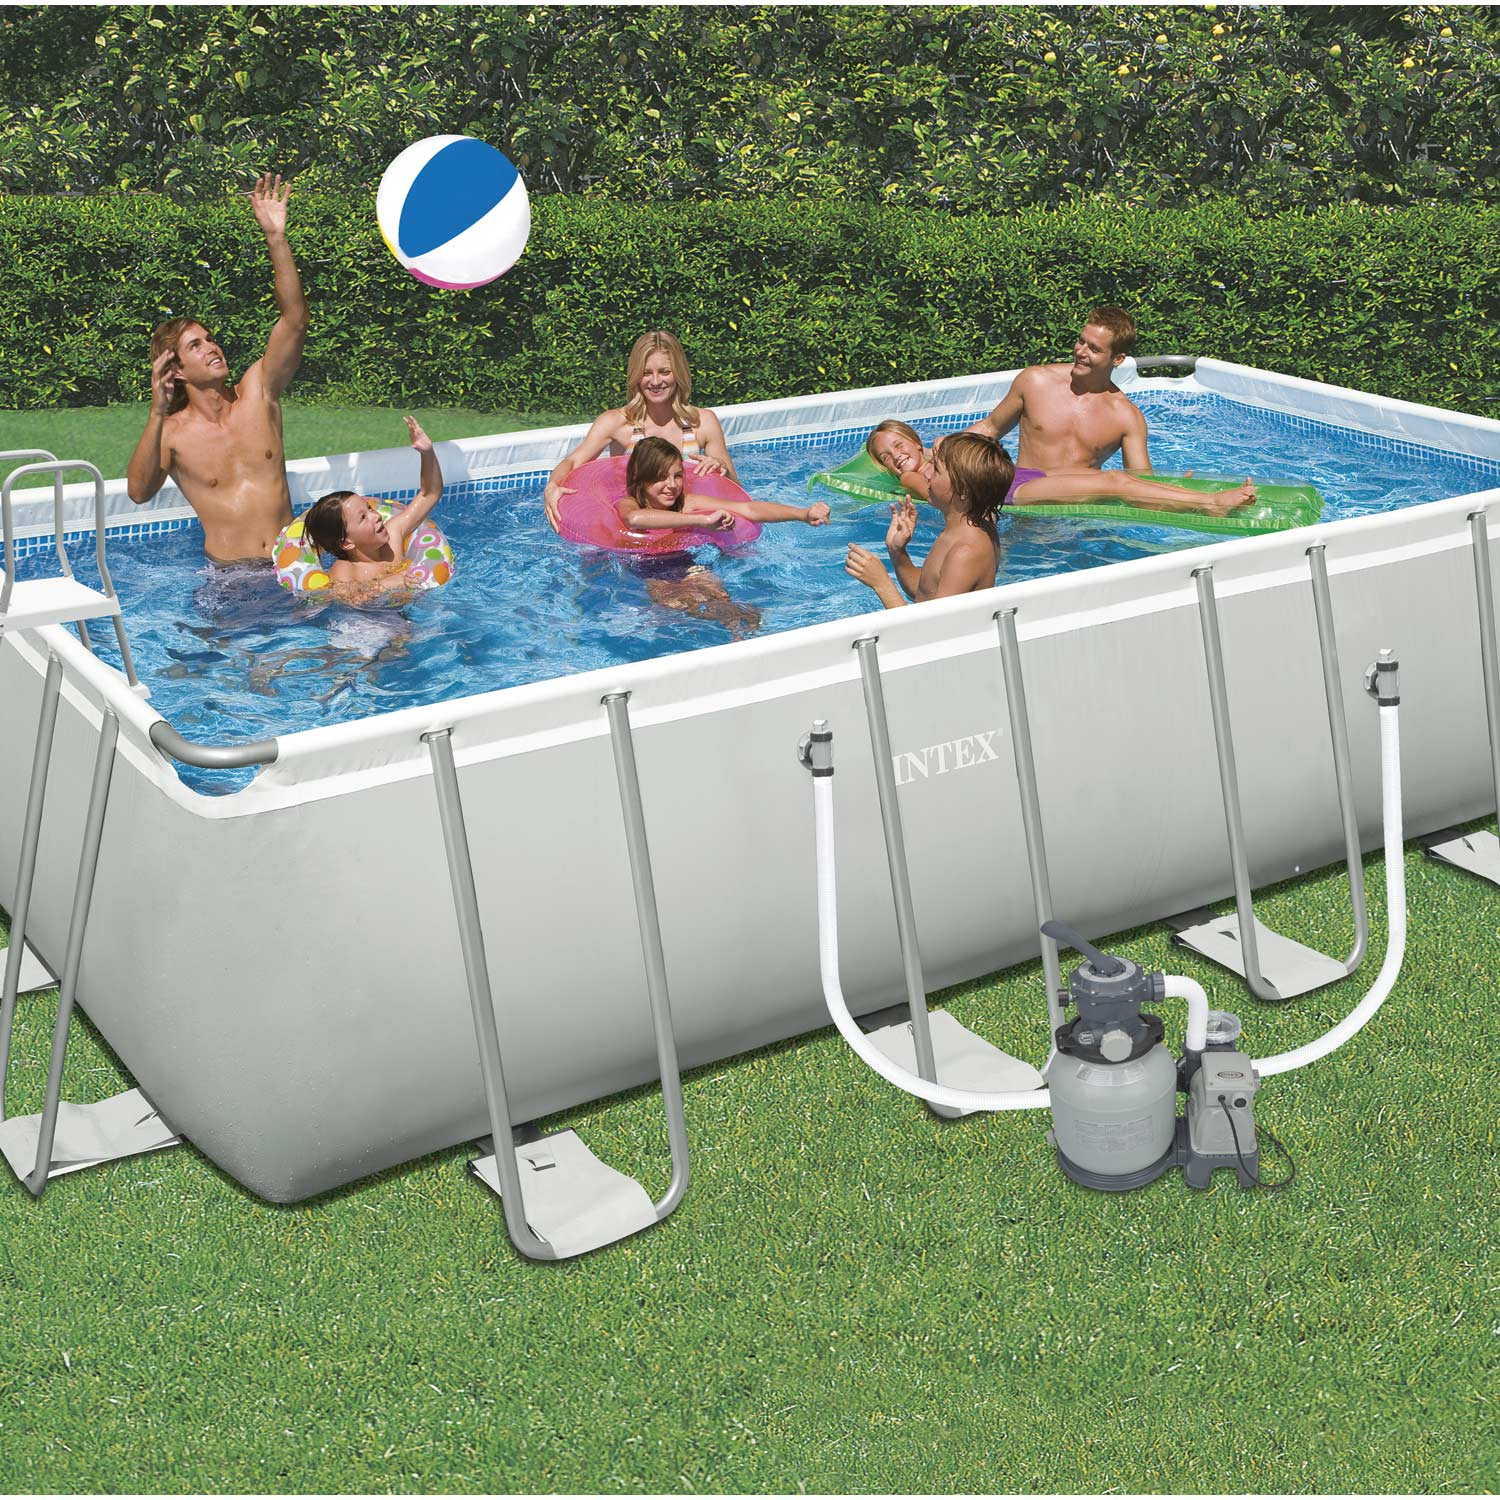 Piscine hors sol autoportante tubulaire ultra silver intex for Piscine intex 5 m